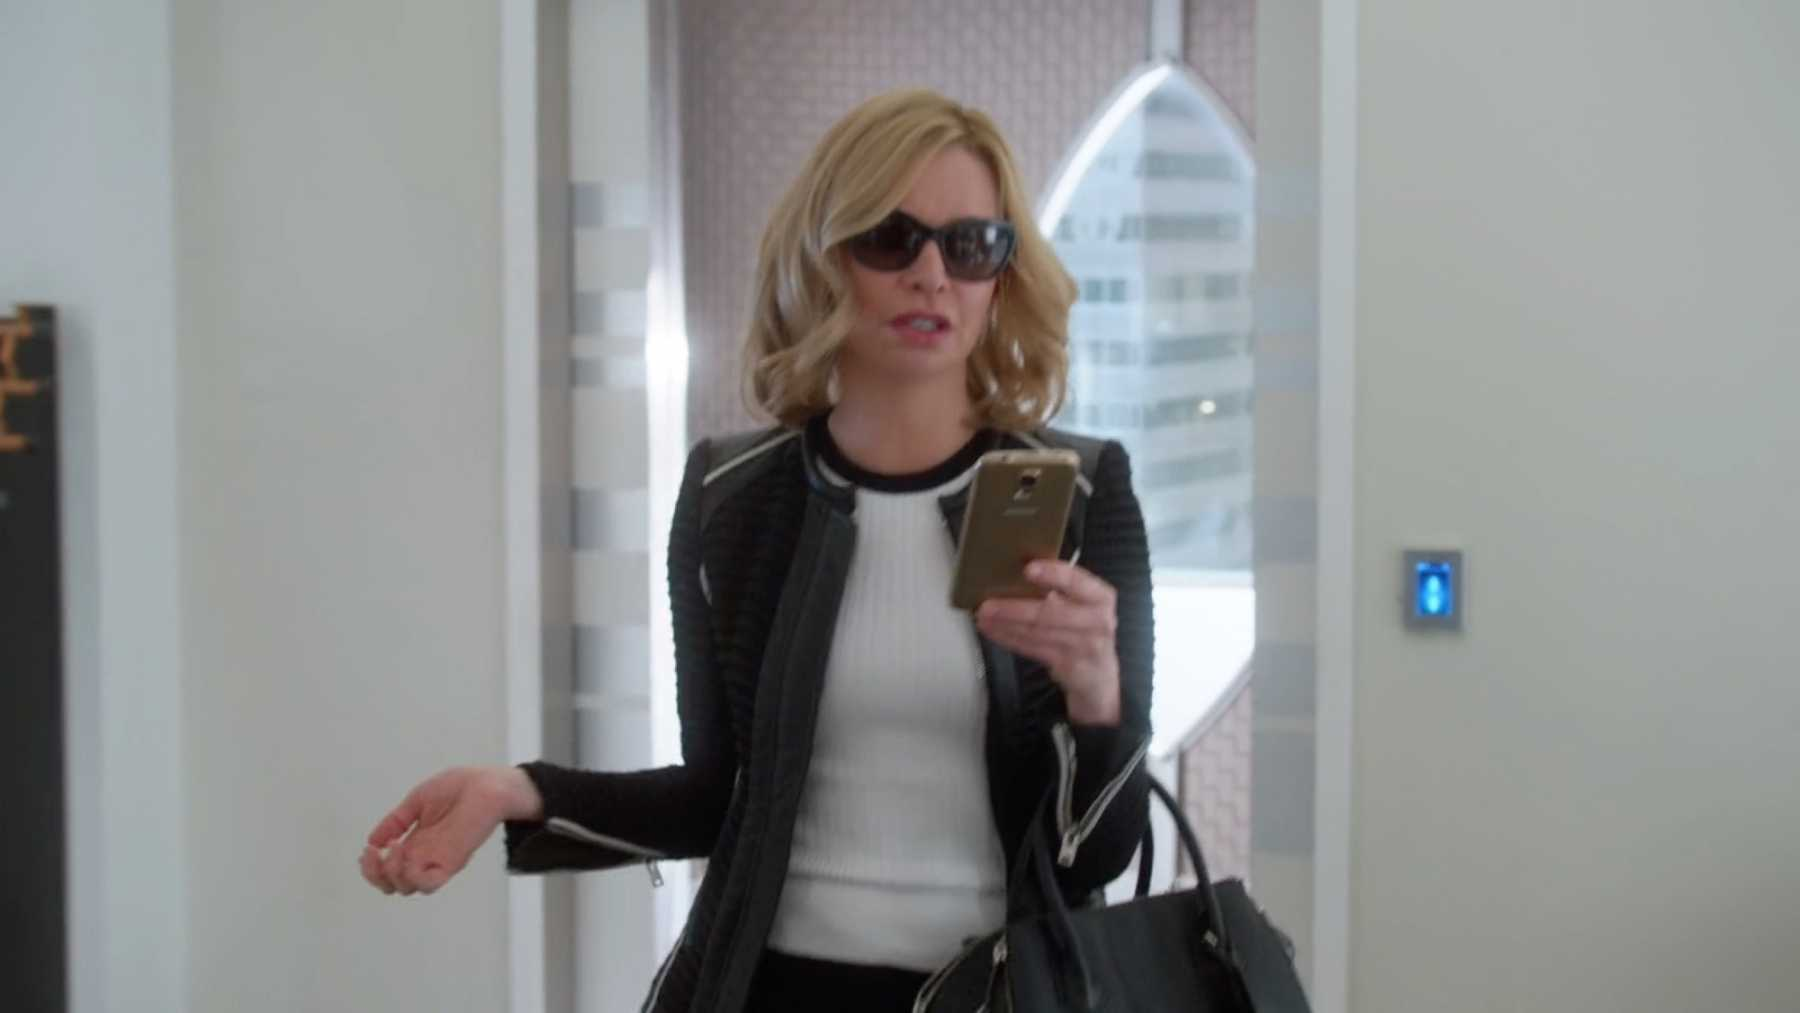 Pop 5 Reasons Why Cat Grant Is My Favorite 'Supergirl' Character | Cat Grant